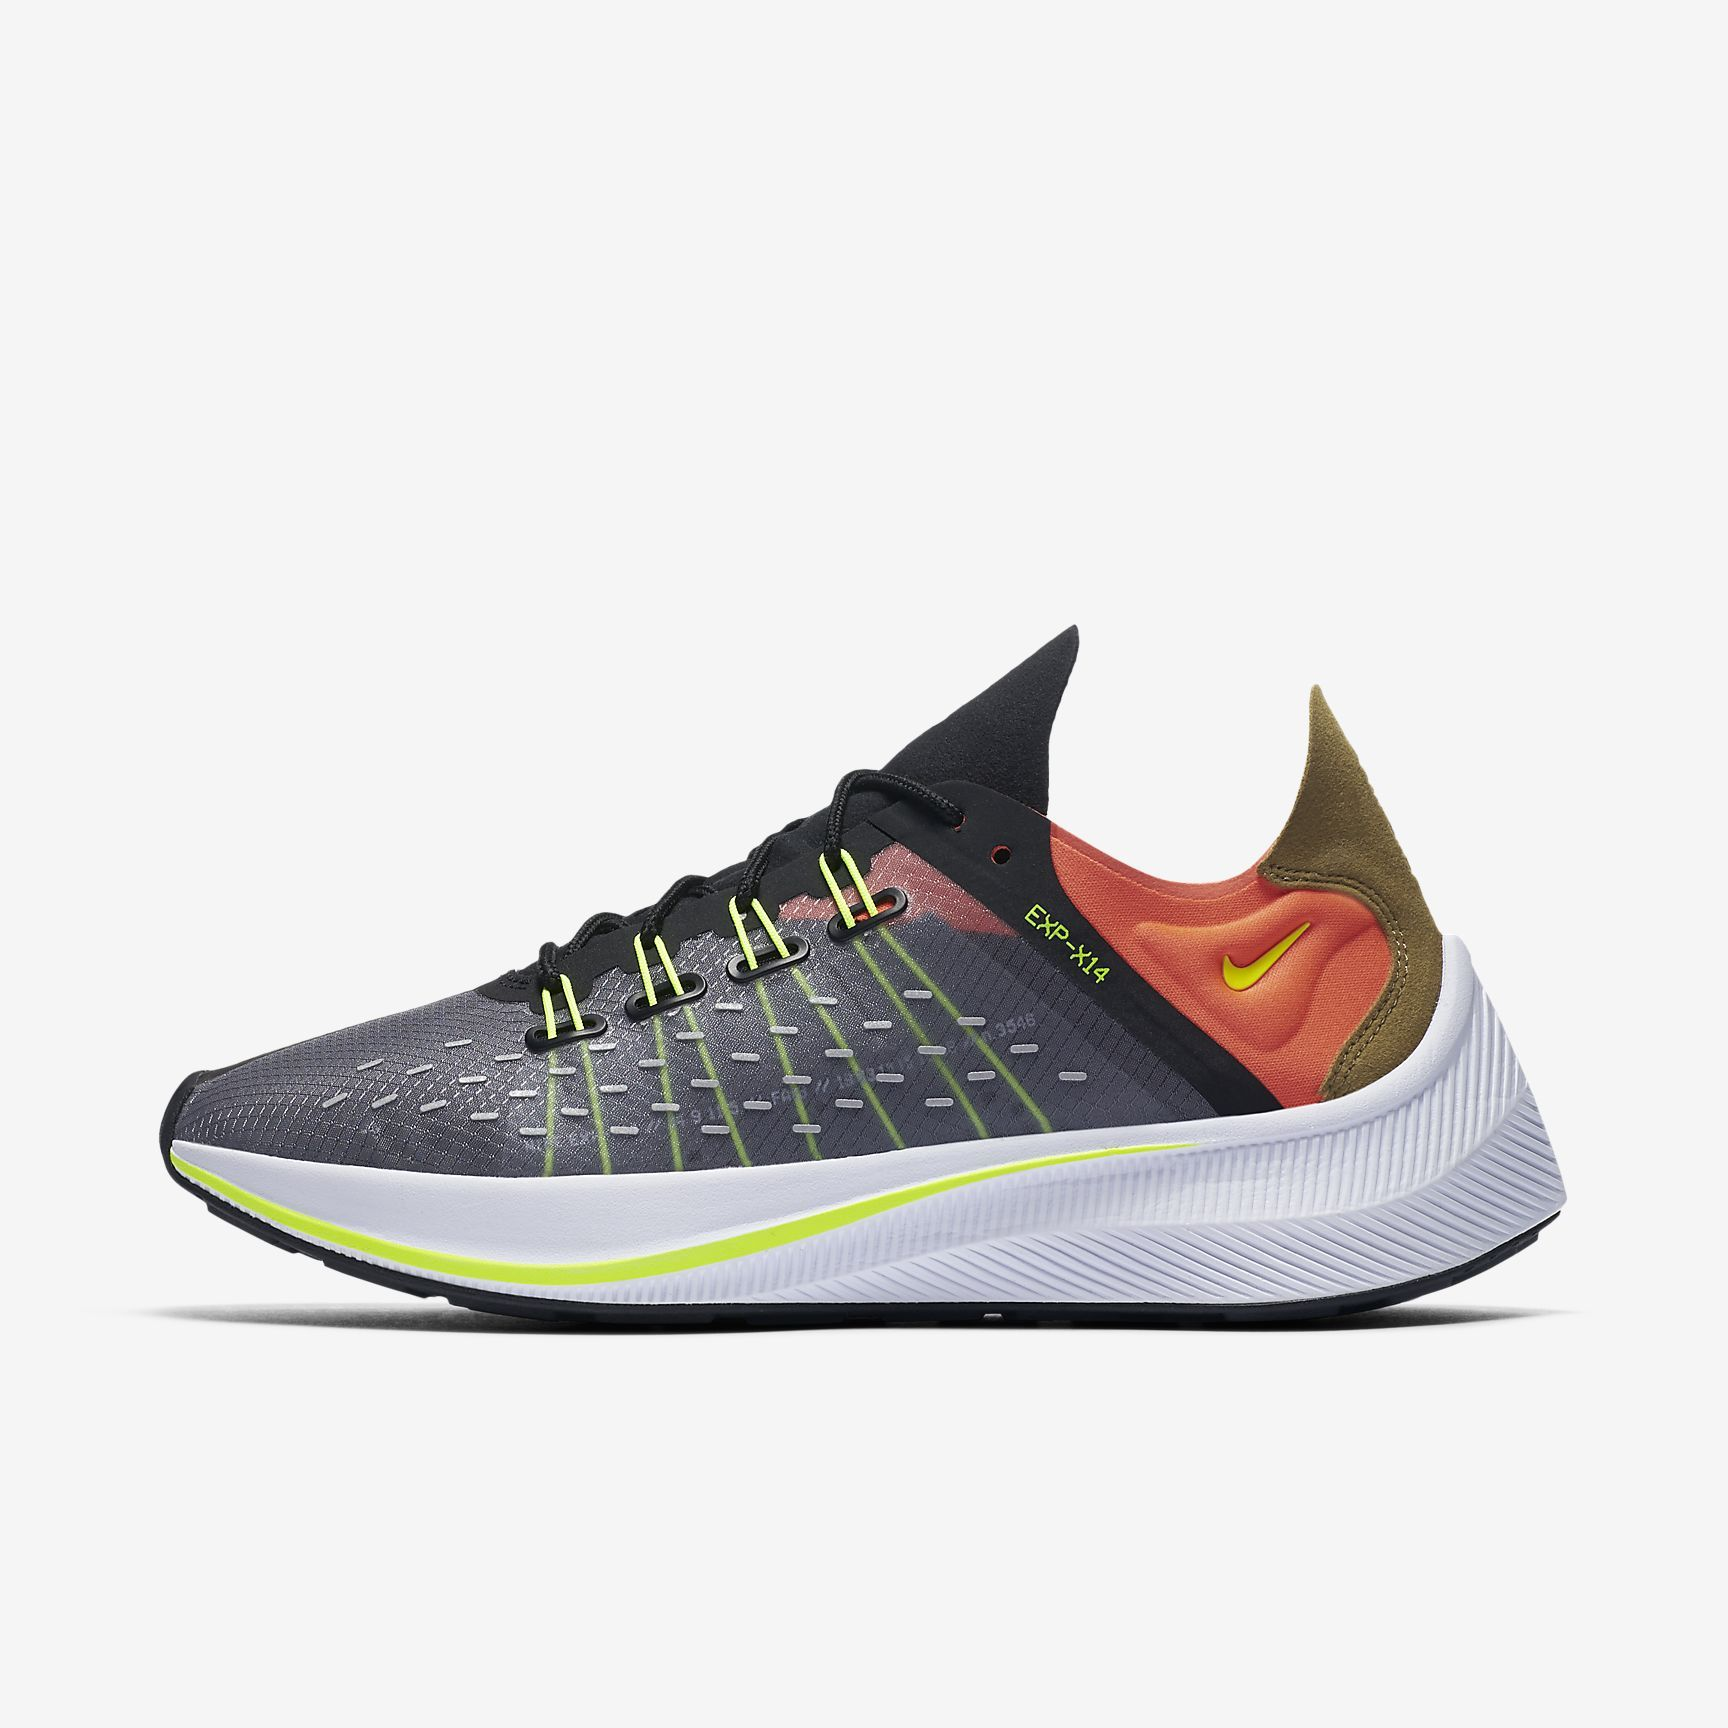 Nike Men S Shoe Exp X14 Most Comfortable Sneakers Shoes